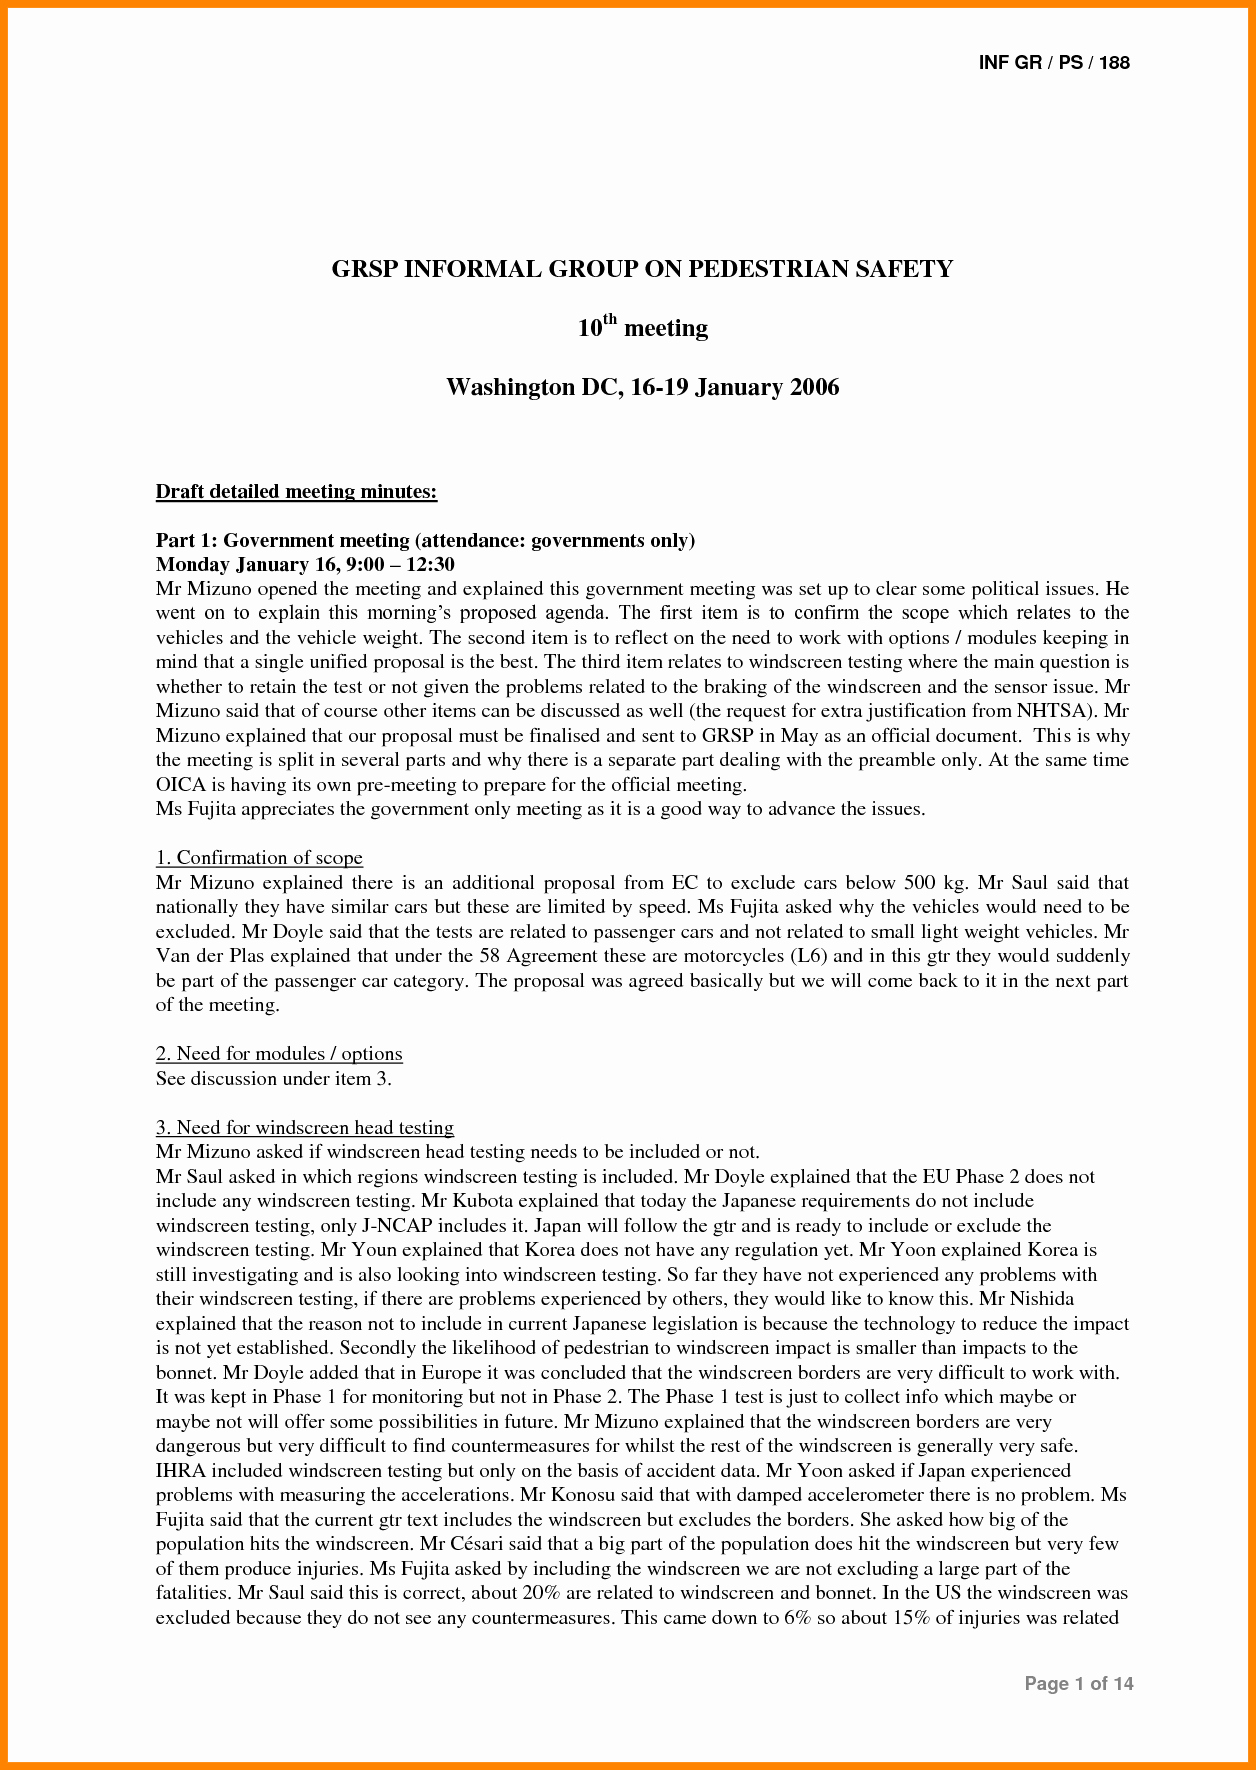 Business Report format Template Beautiful Argumentative Synthesis Essay Writing Tips and Suggestions